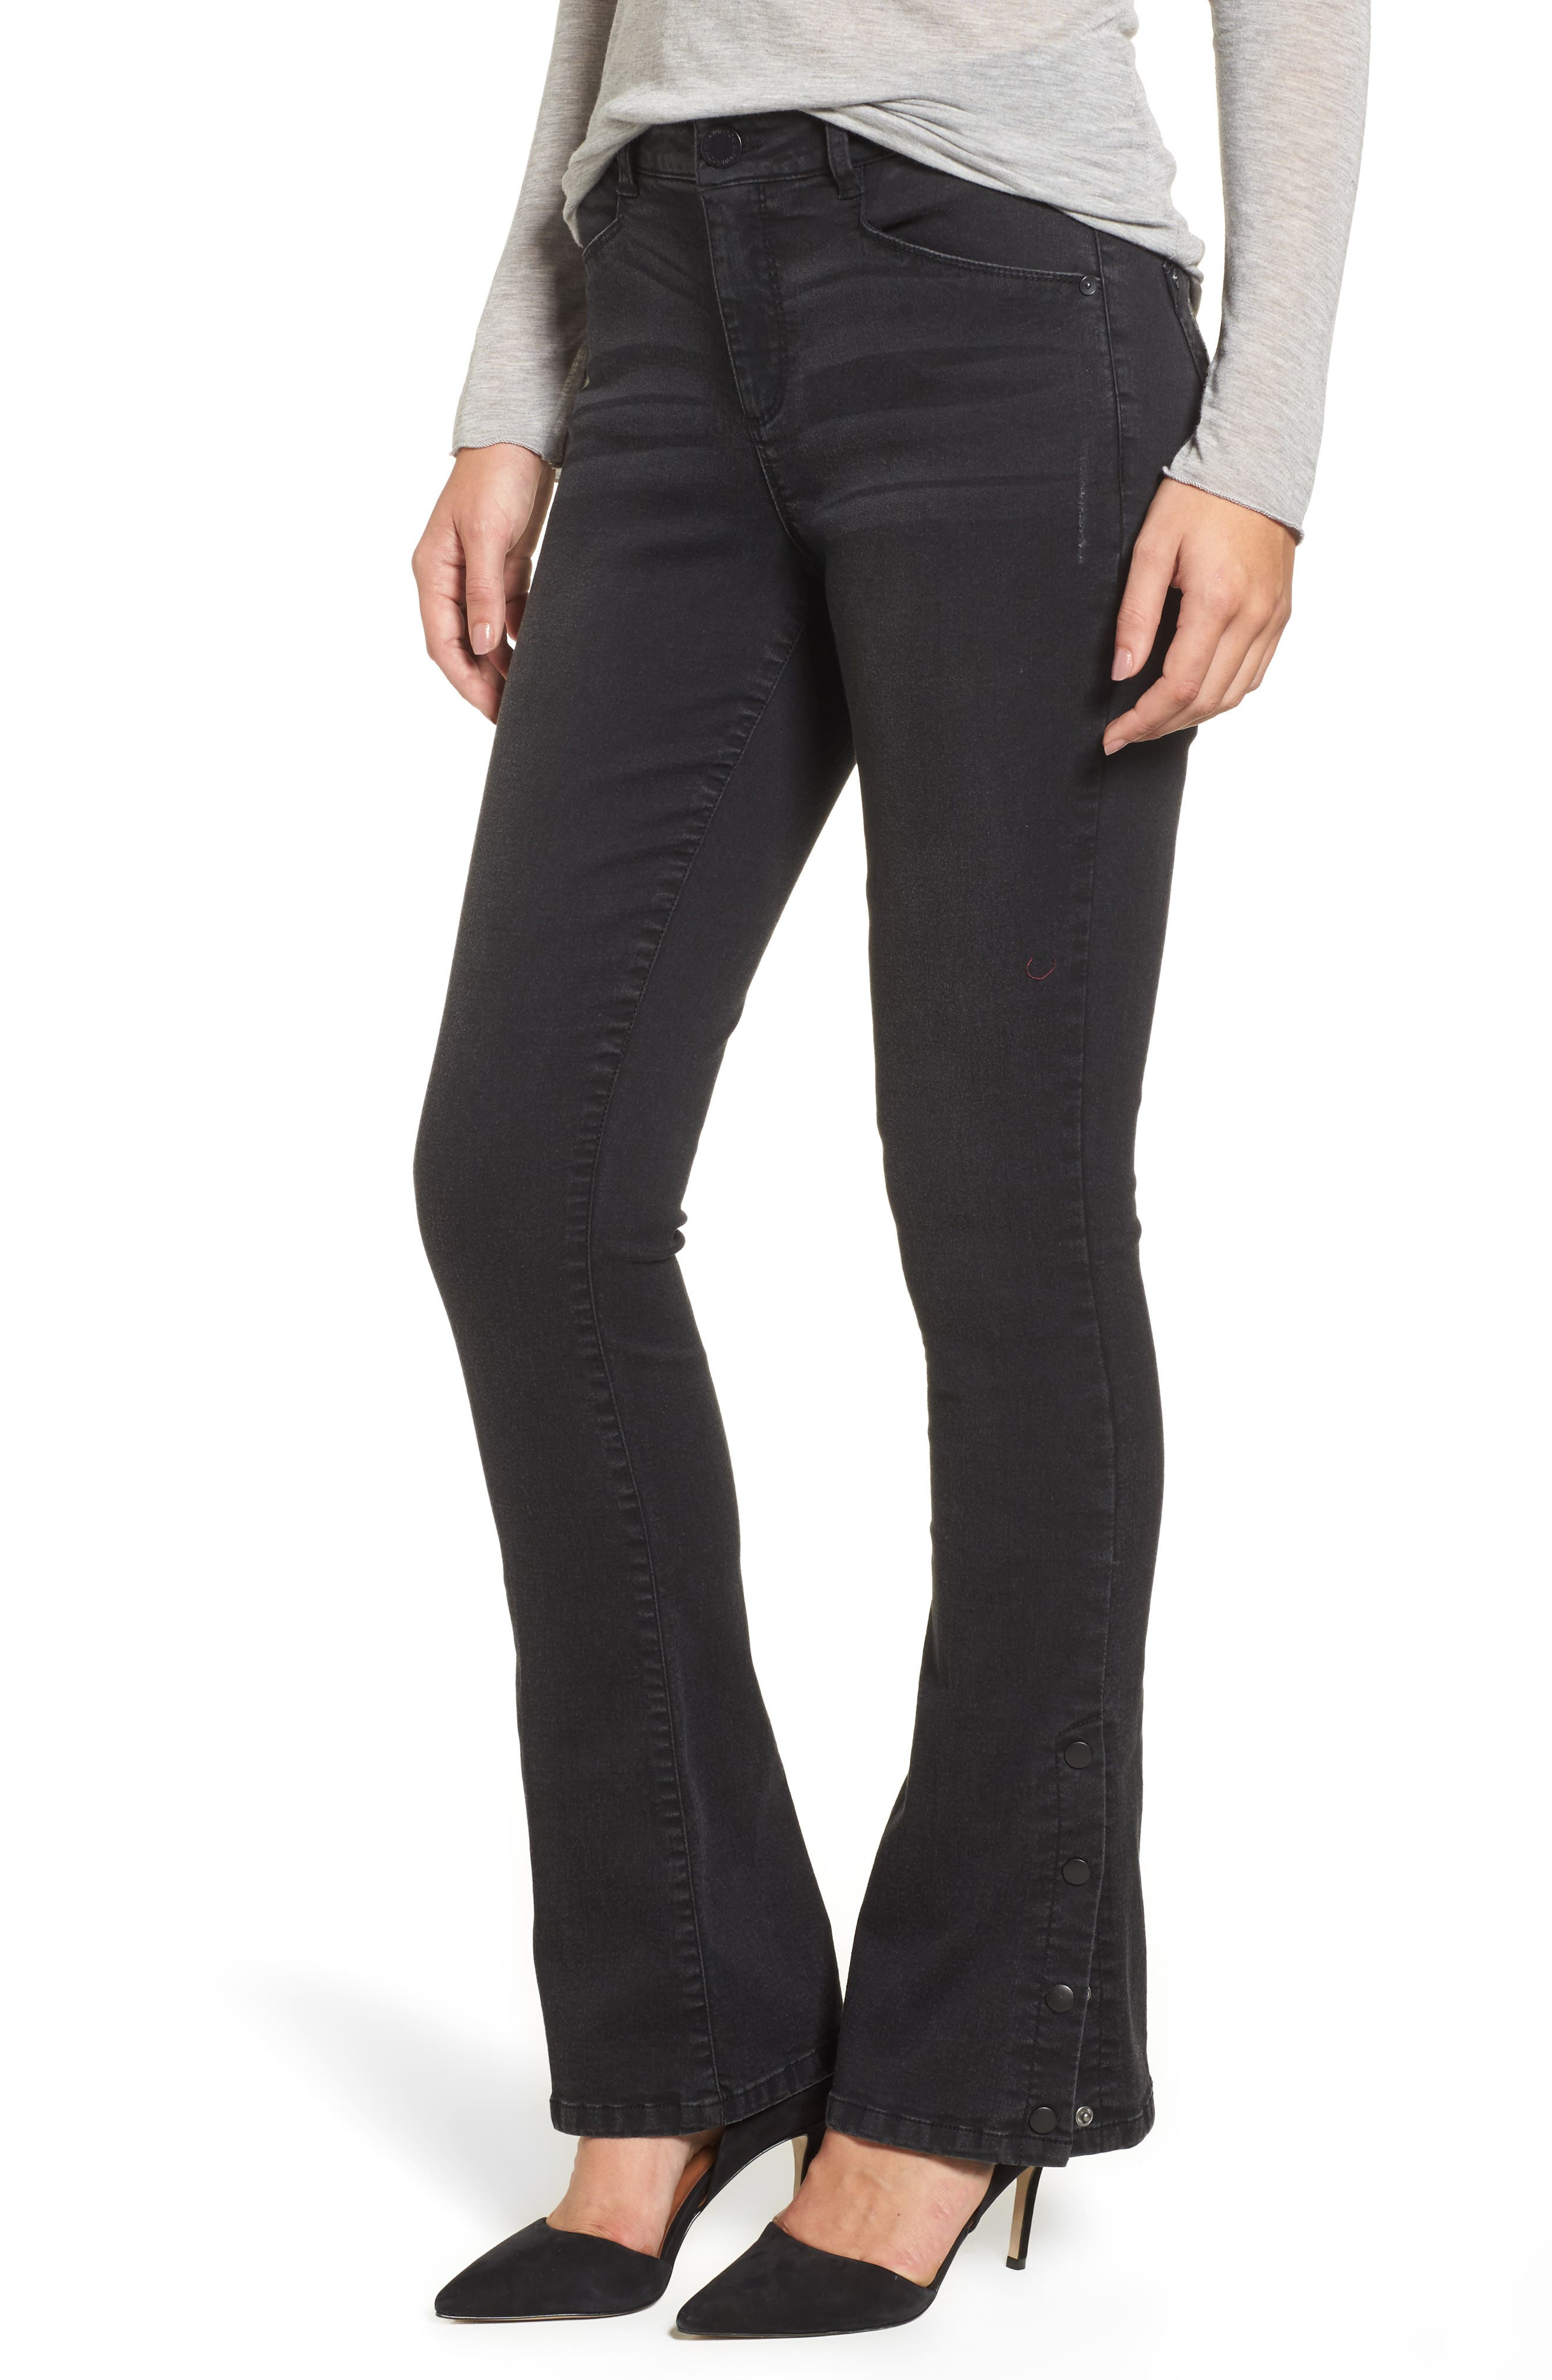 Main Image - Wit & Wisdom Snap Hem Itty Bitty Bootcut Jeans (Nordstrom Exclusive)